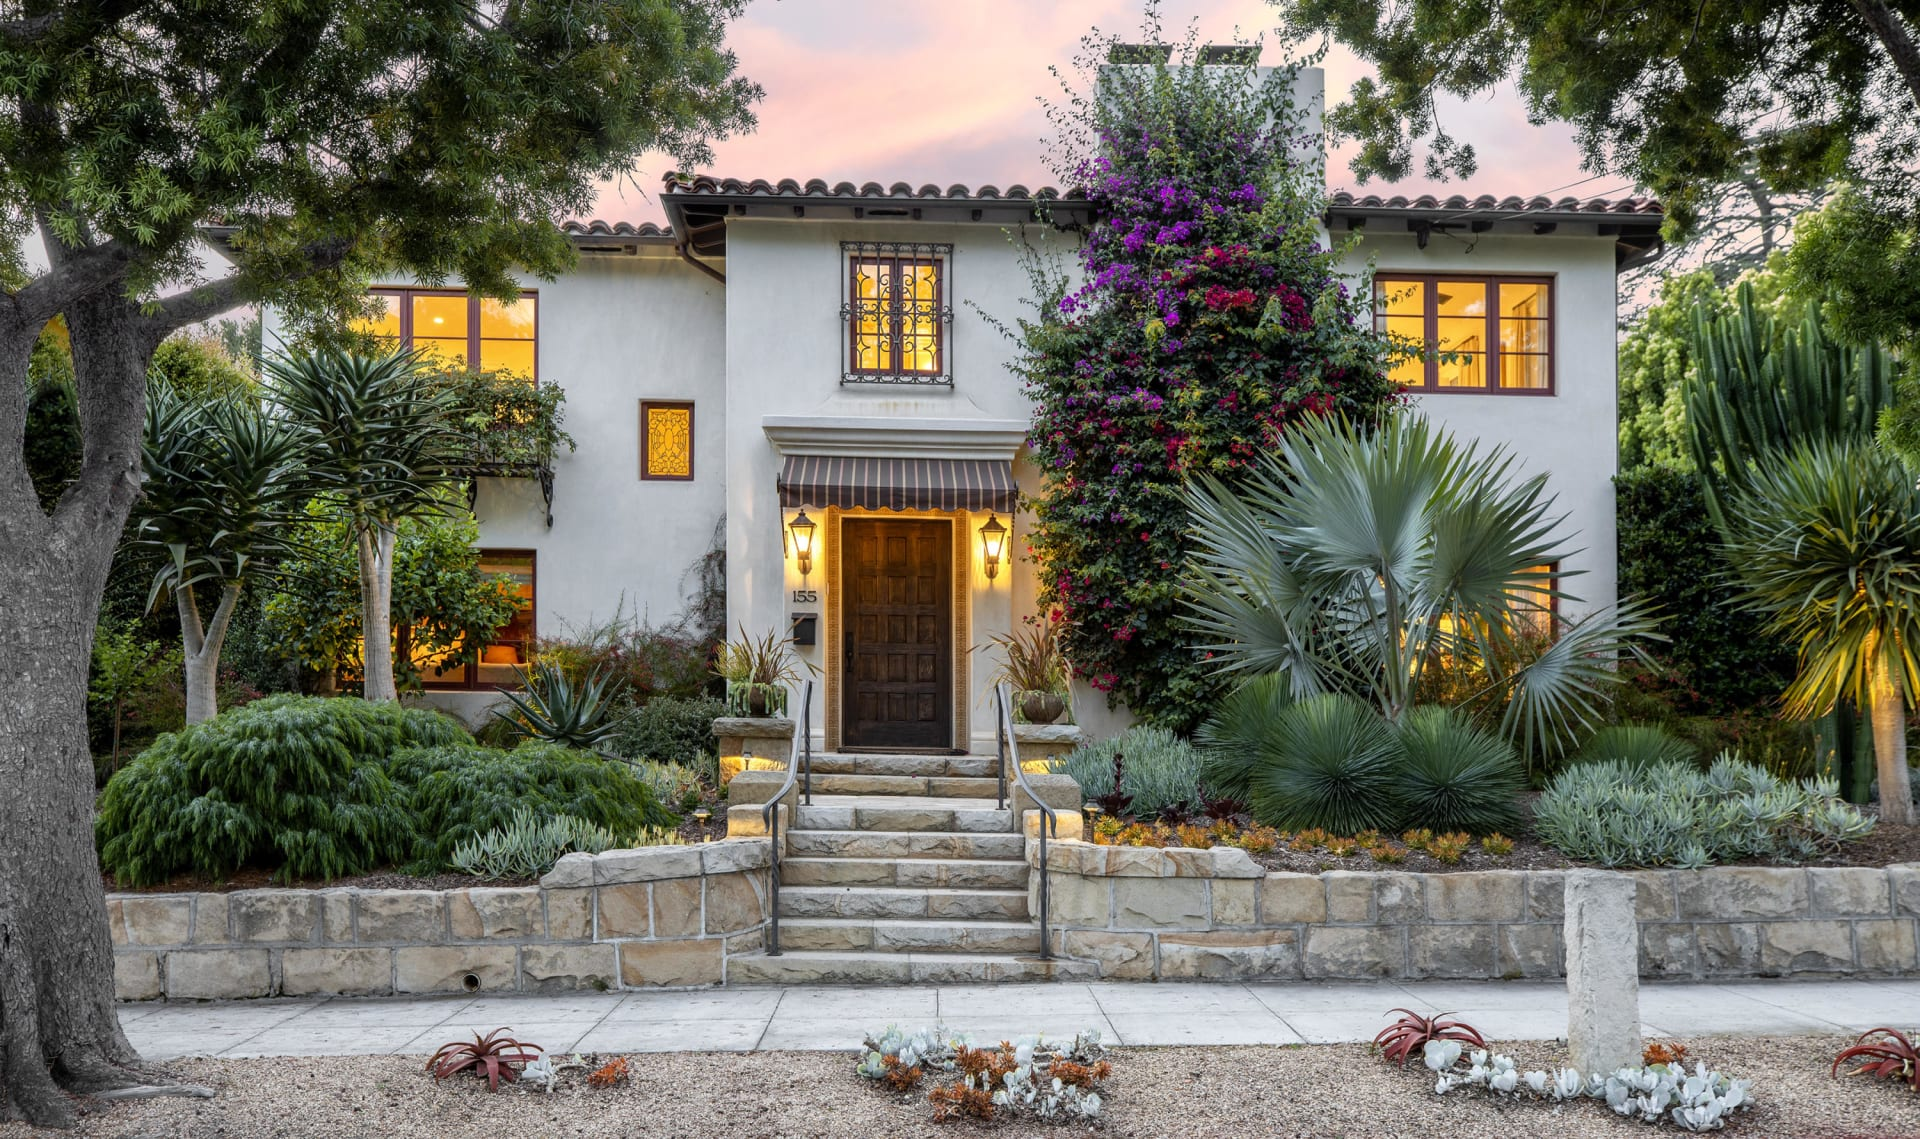 Want to Move? Build a New Home in Santa Barbara